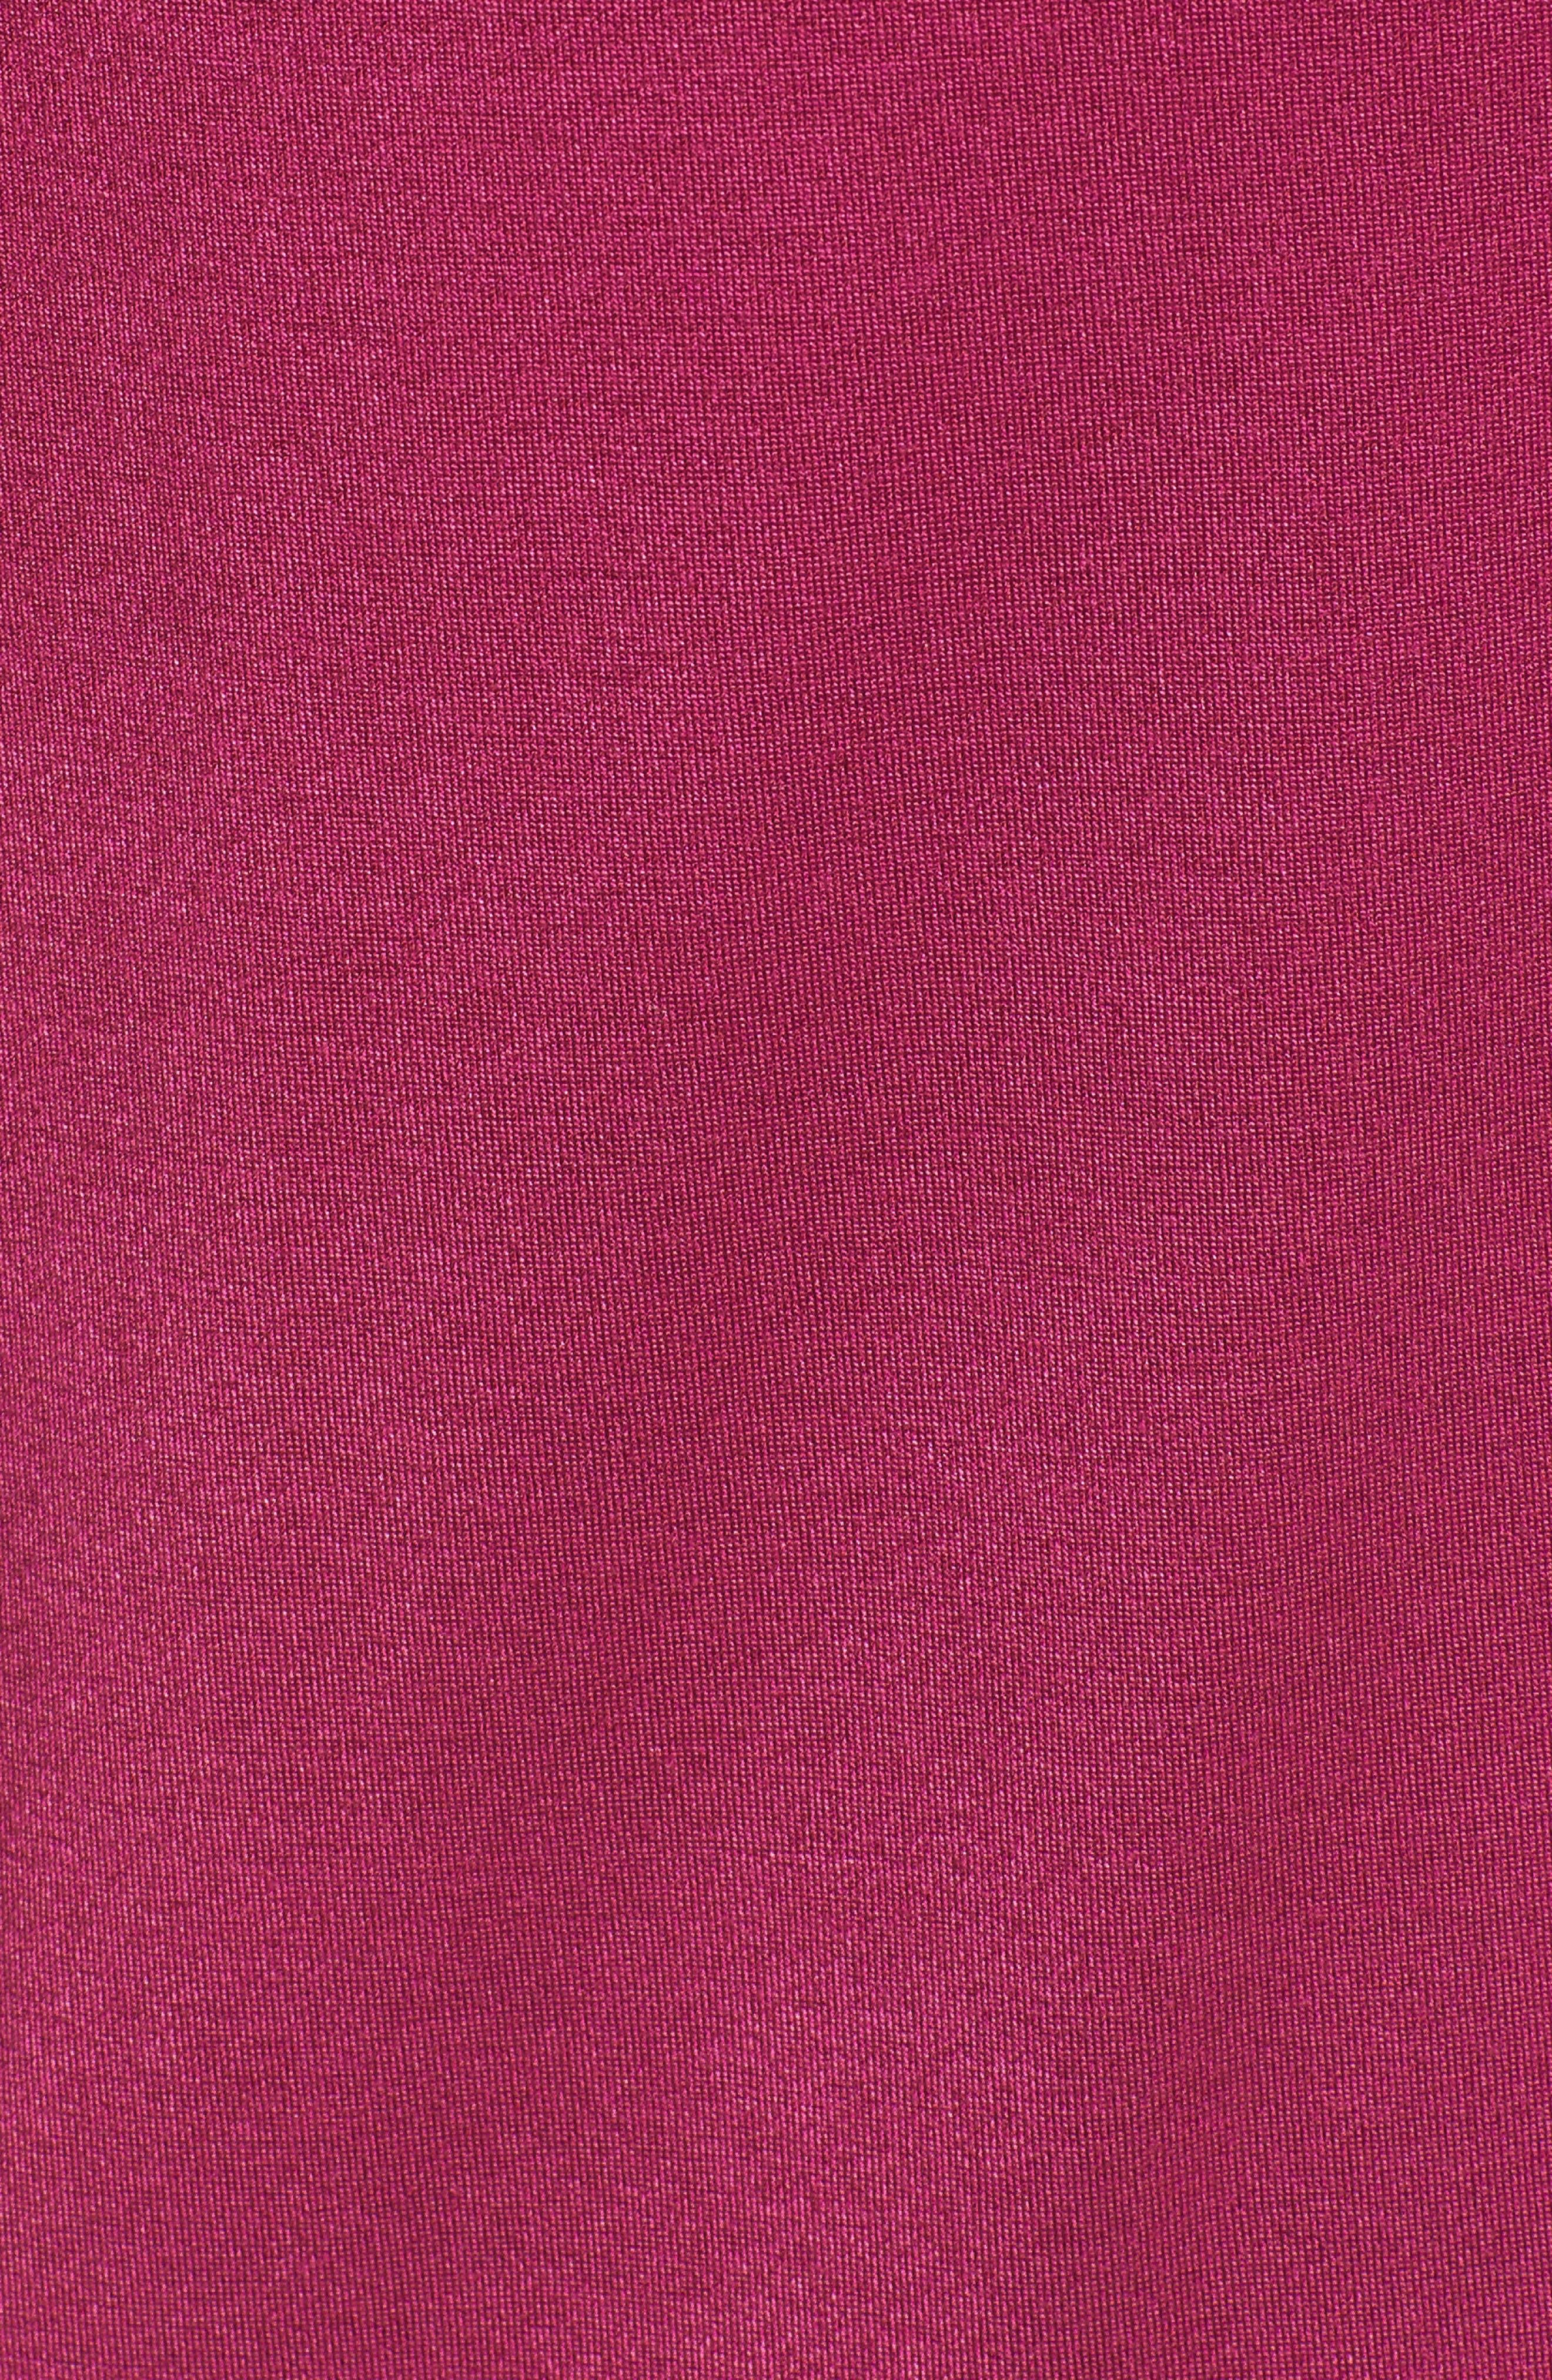 Ruched Sleeve Tee,                             Alternate thumbnail 20, color,